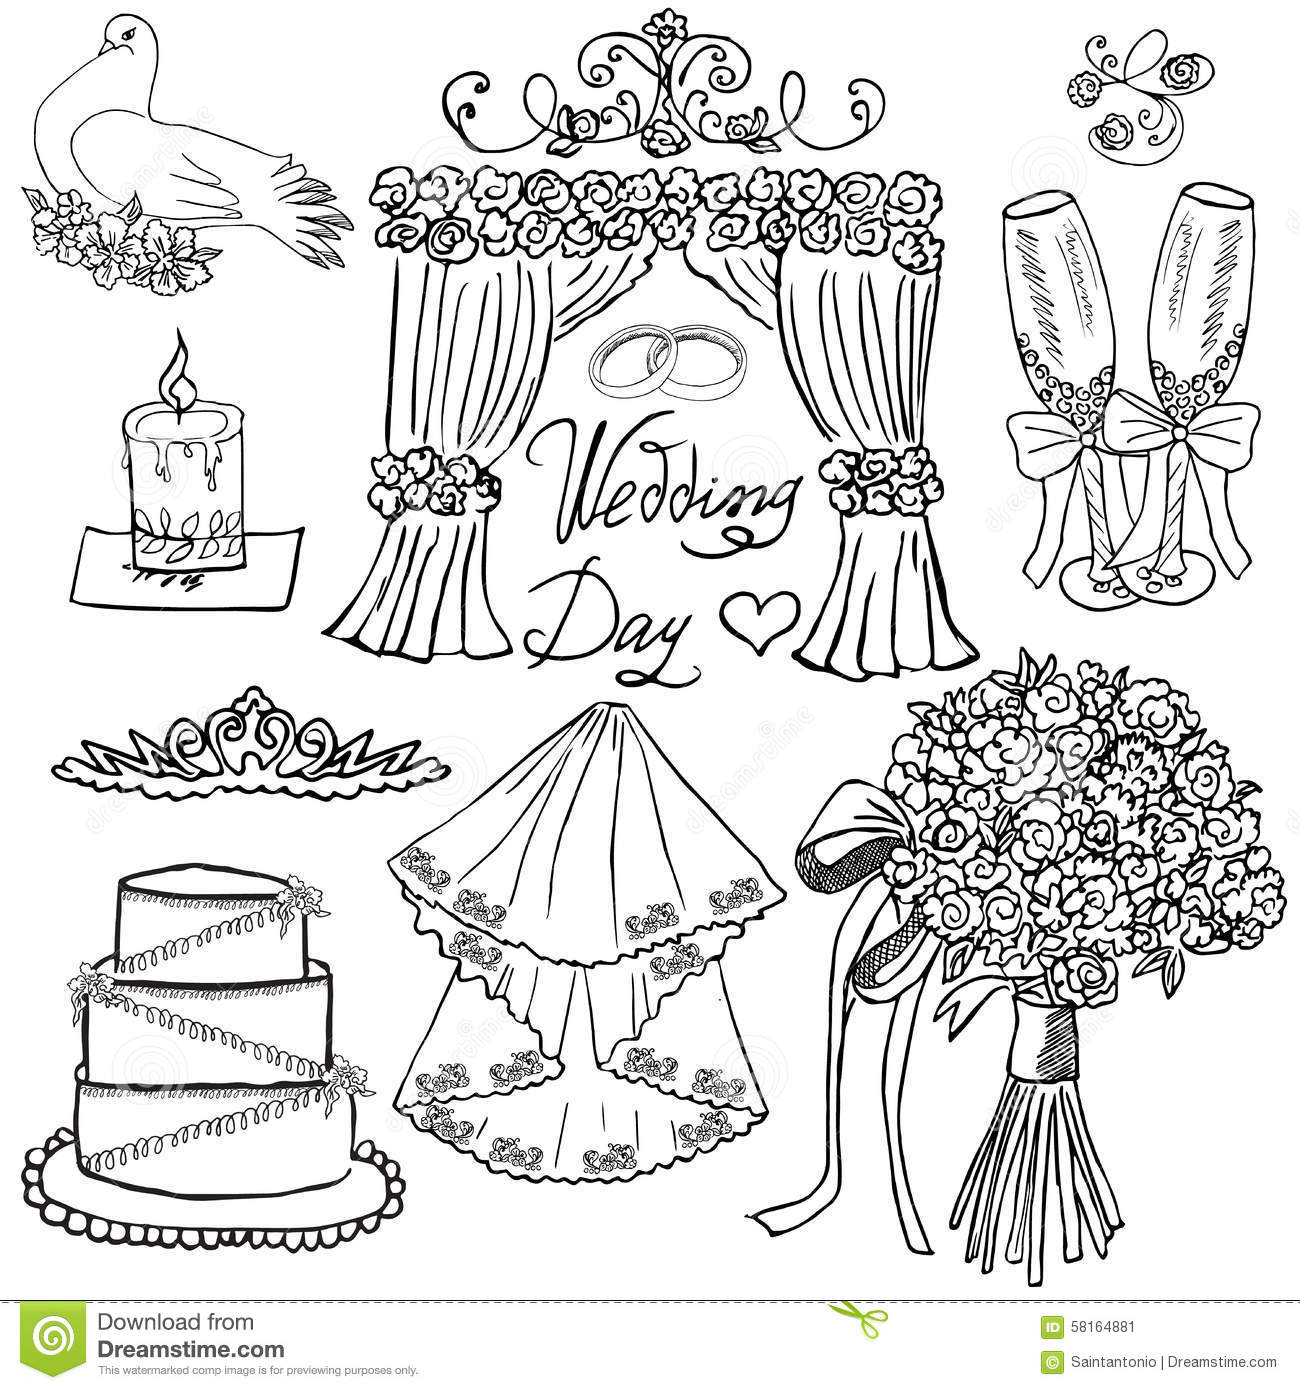 Attributes Of A Wedding Ceremony Royalty Free Stock Image